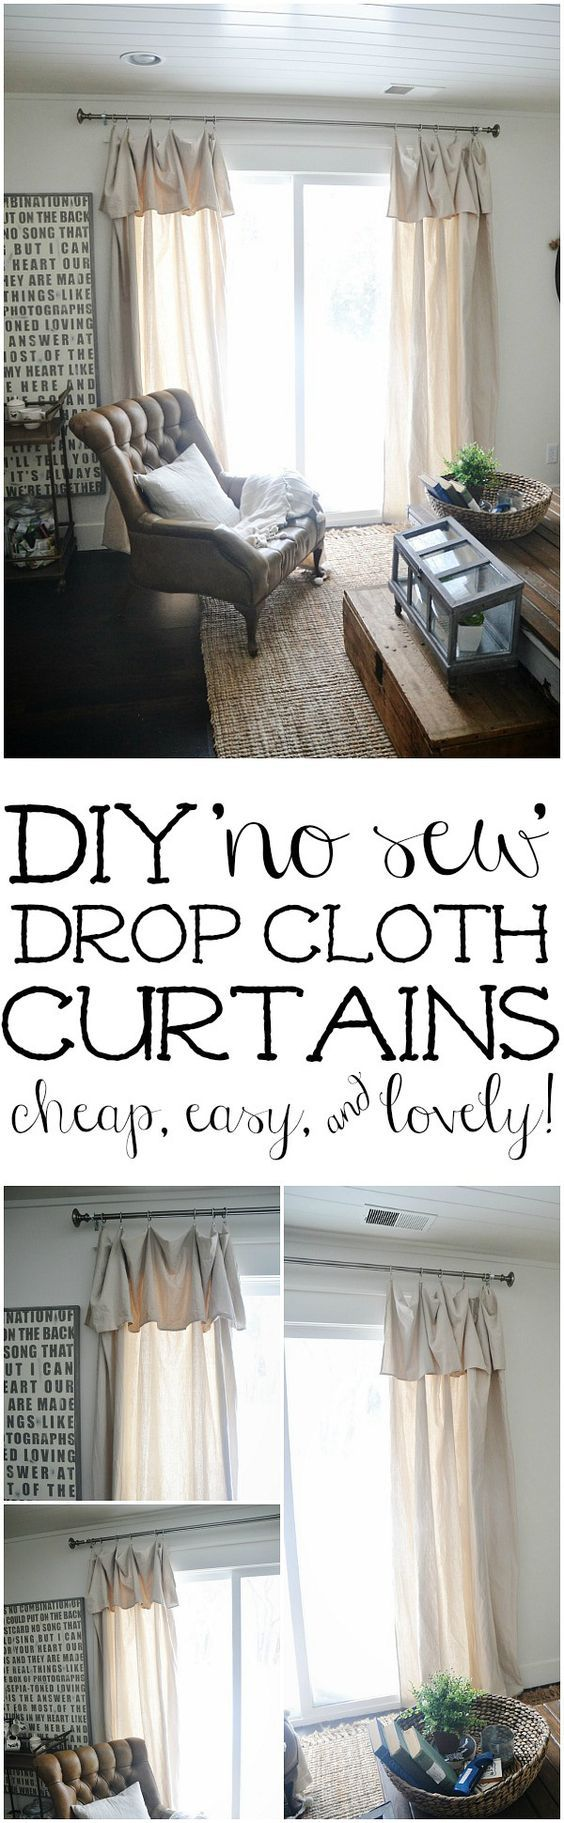 Cheap window coverings  diy nosew drop cloth curtains  the cheapest u easiest diy curtains